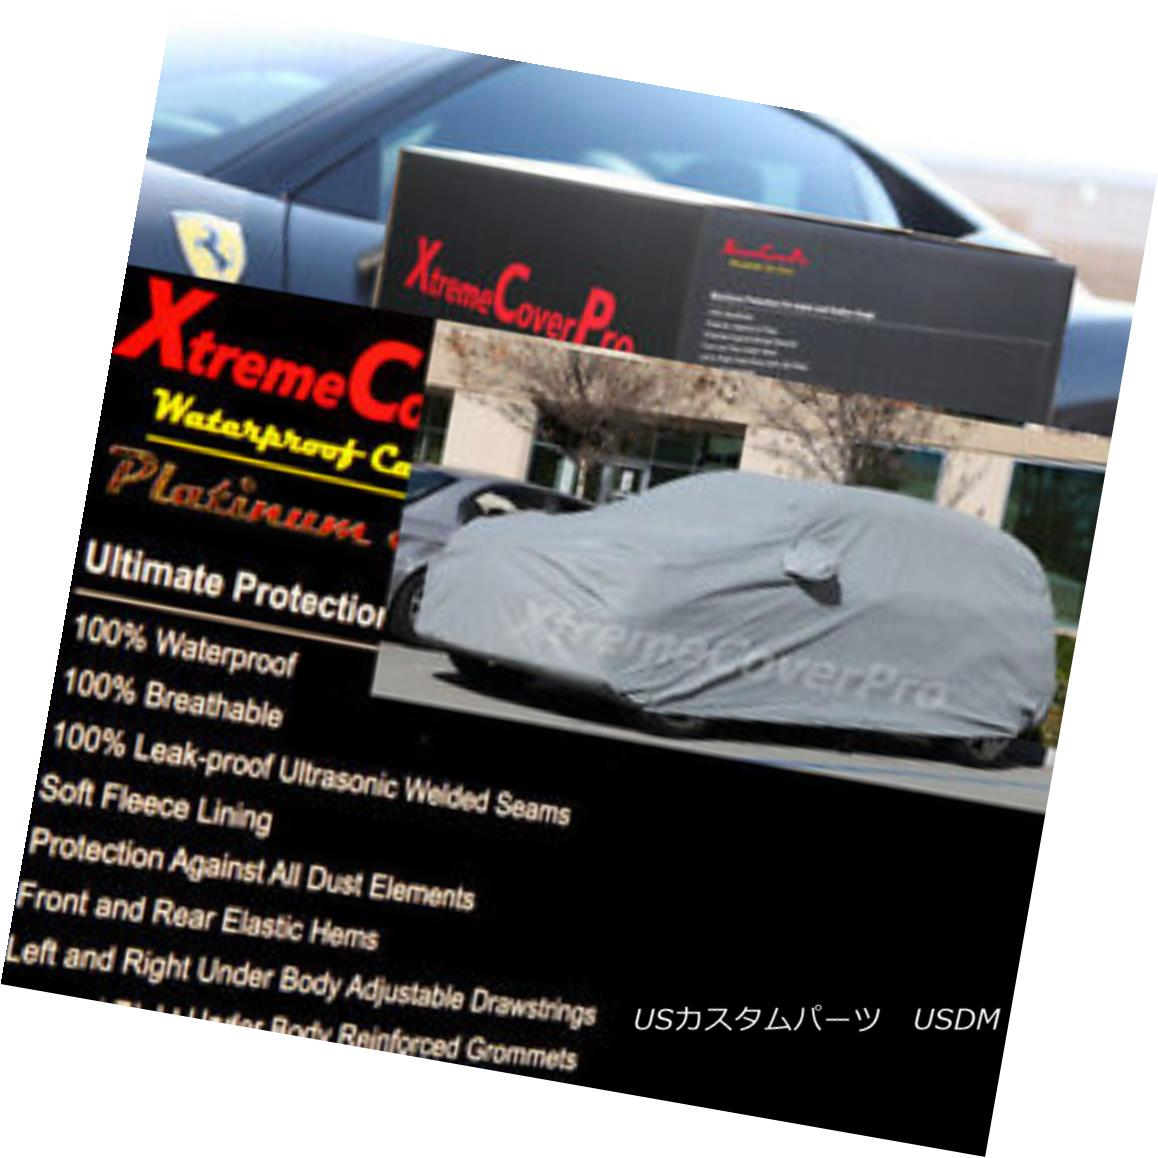 カーカバー 1998 1999 Lincoln Navigator SWB Waterproof Car Cover w/MirrorPocket 1998年1999年リンカーンナビゲーターSWB防水カーカバー付き(MirrorPocket)